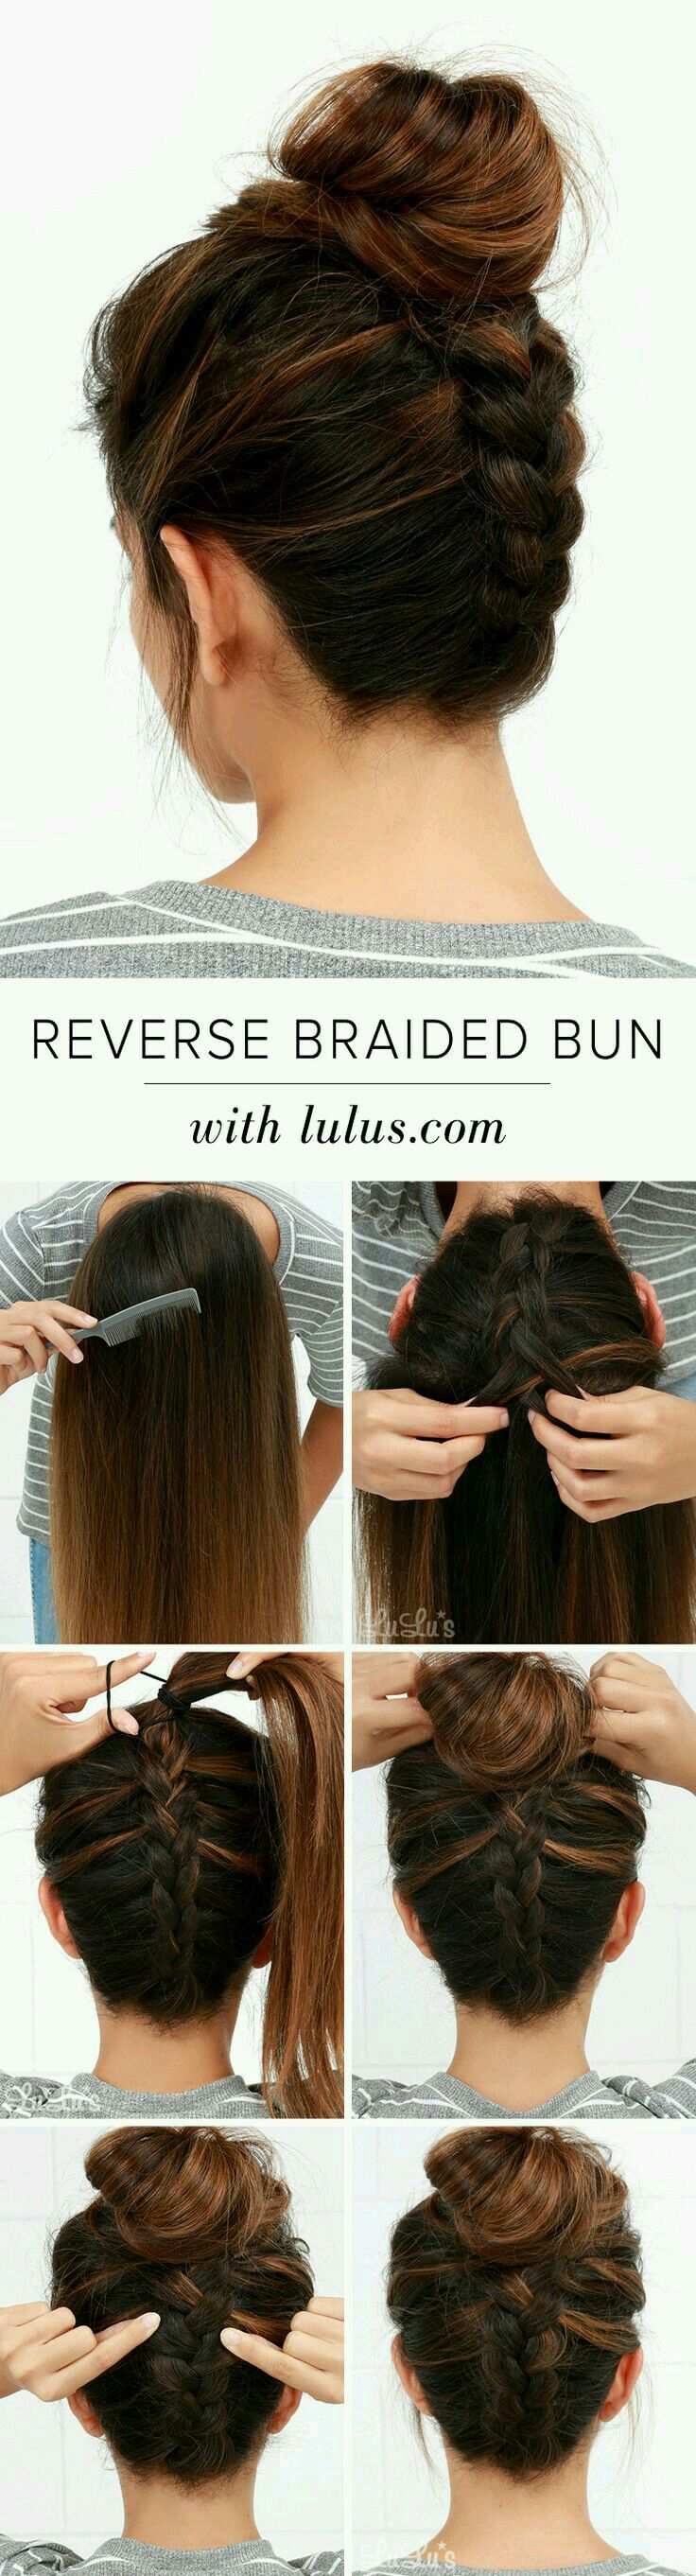 best carolina images on pinterest hairstyles hair and braids